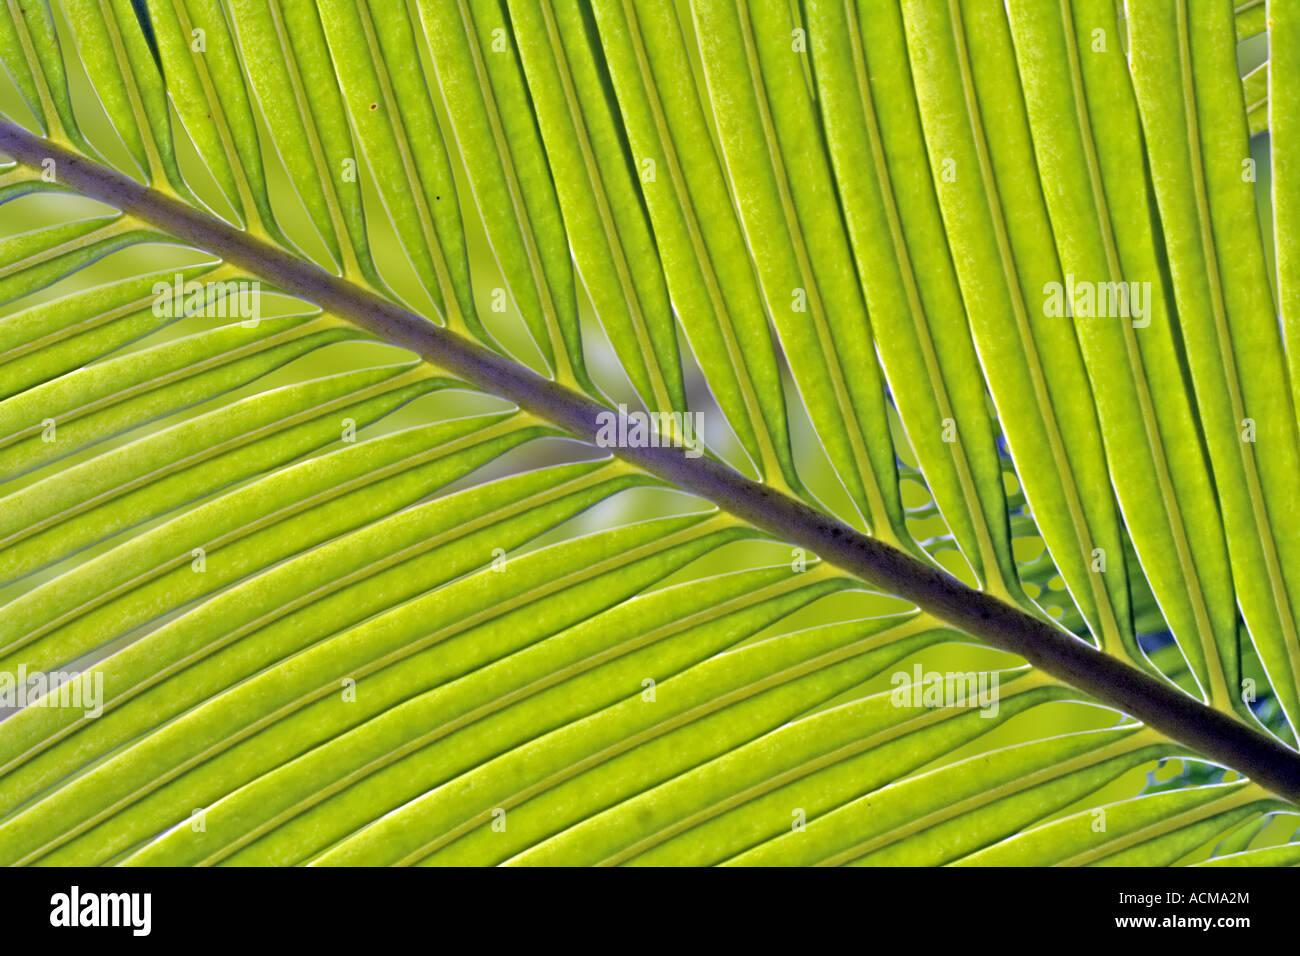 Green Leaf In Budapest The  Capital Of Hungary - Stock Image